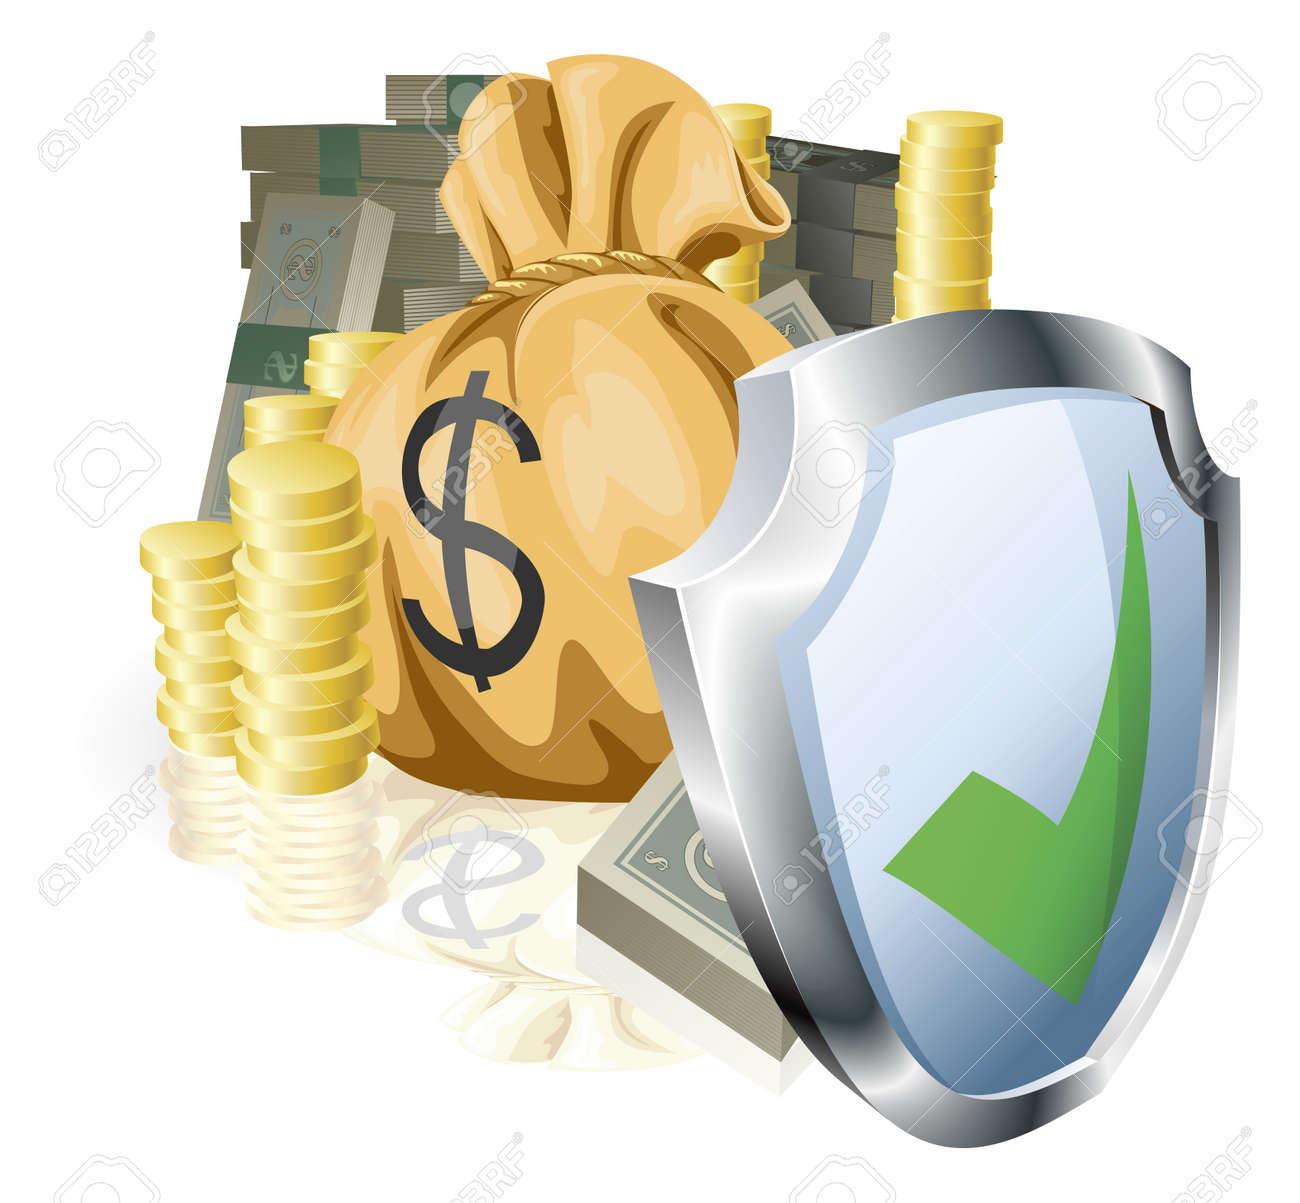 Stacks Of Money Being Protected By A Indicating It Is Secure.. Royalty Free Cliparts, Vectors, And Stock Illustration. Image 11070816.